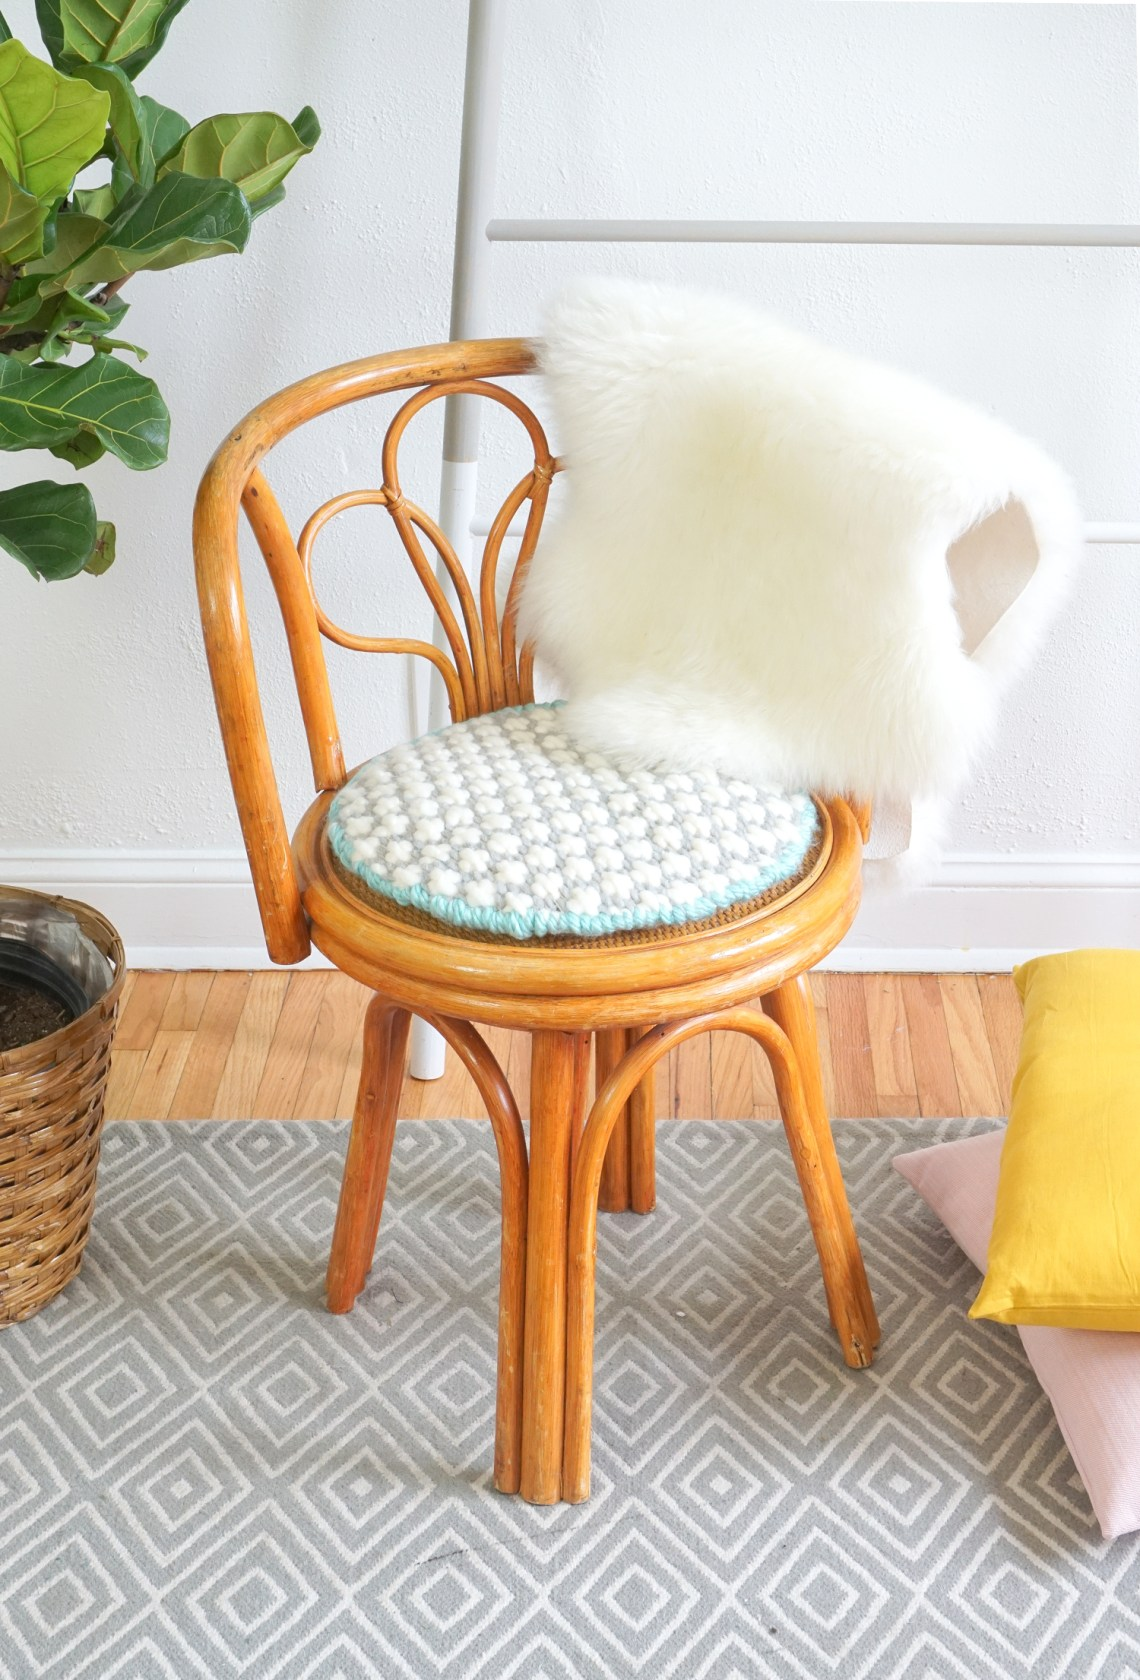 Stitch up a cross stitch cushion for your bare accent or dining chairs. Click through for more deets!